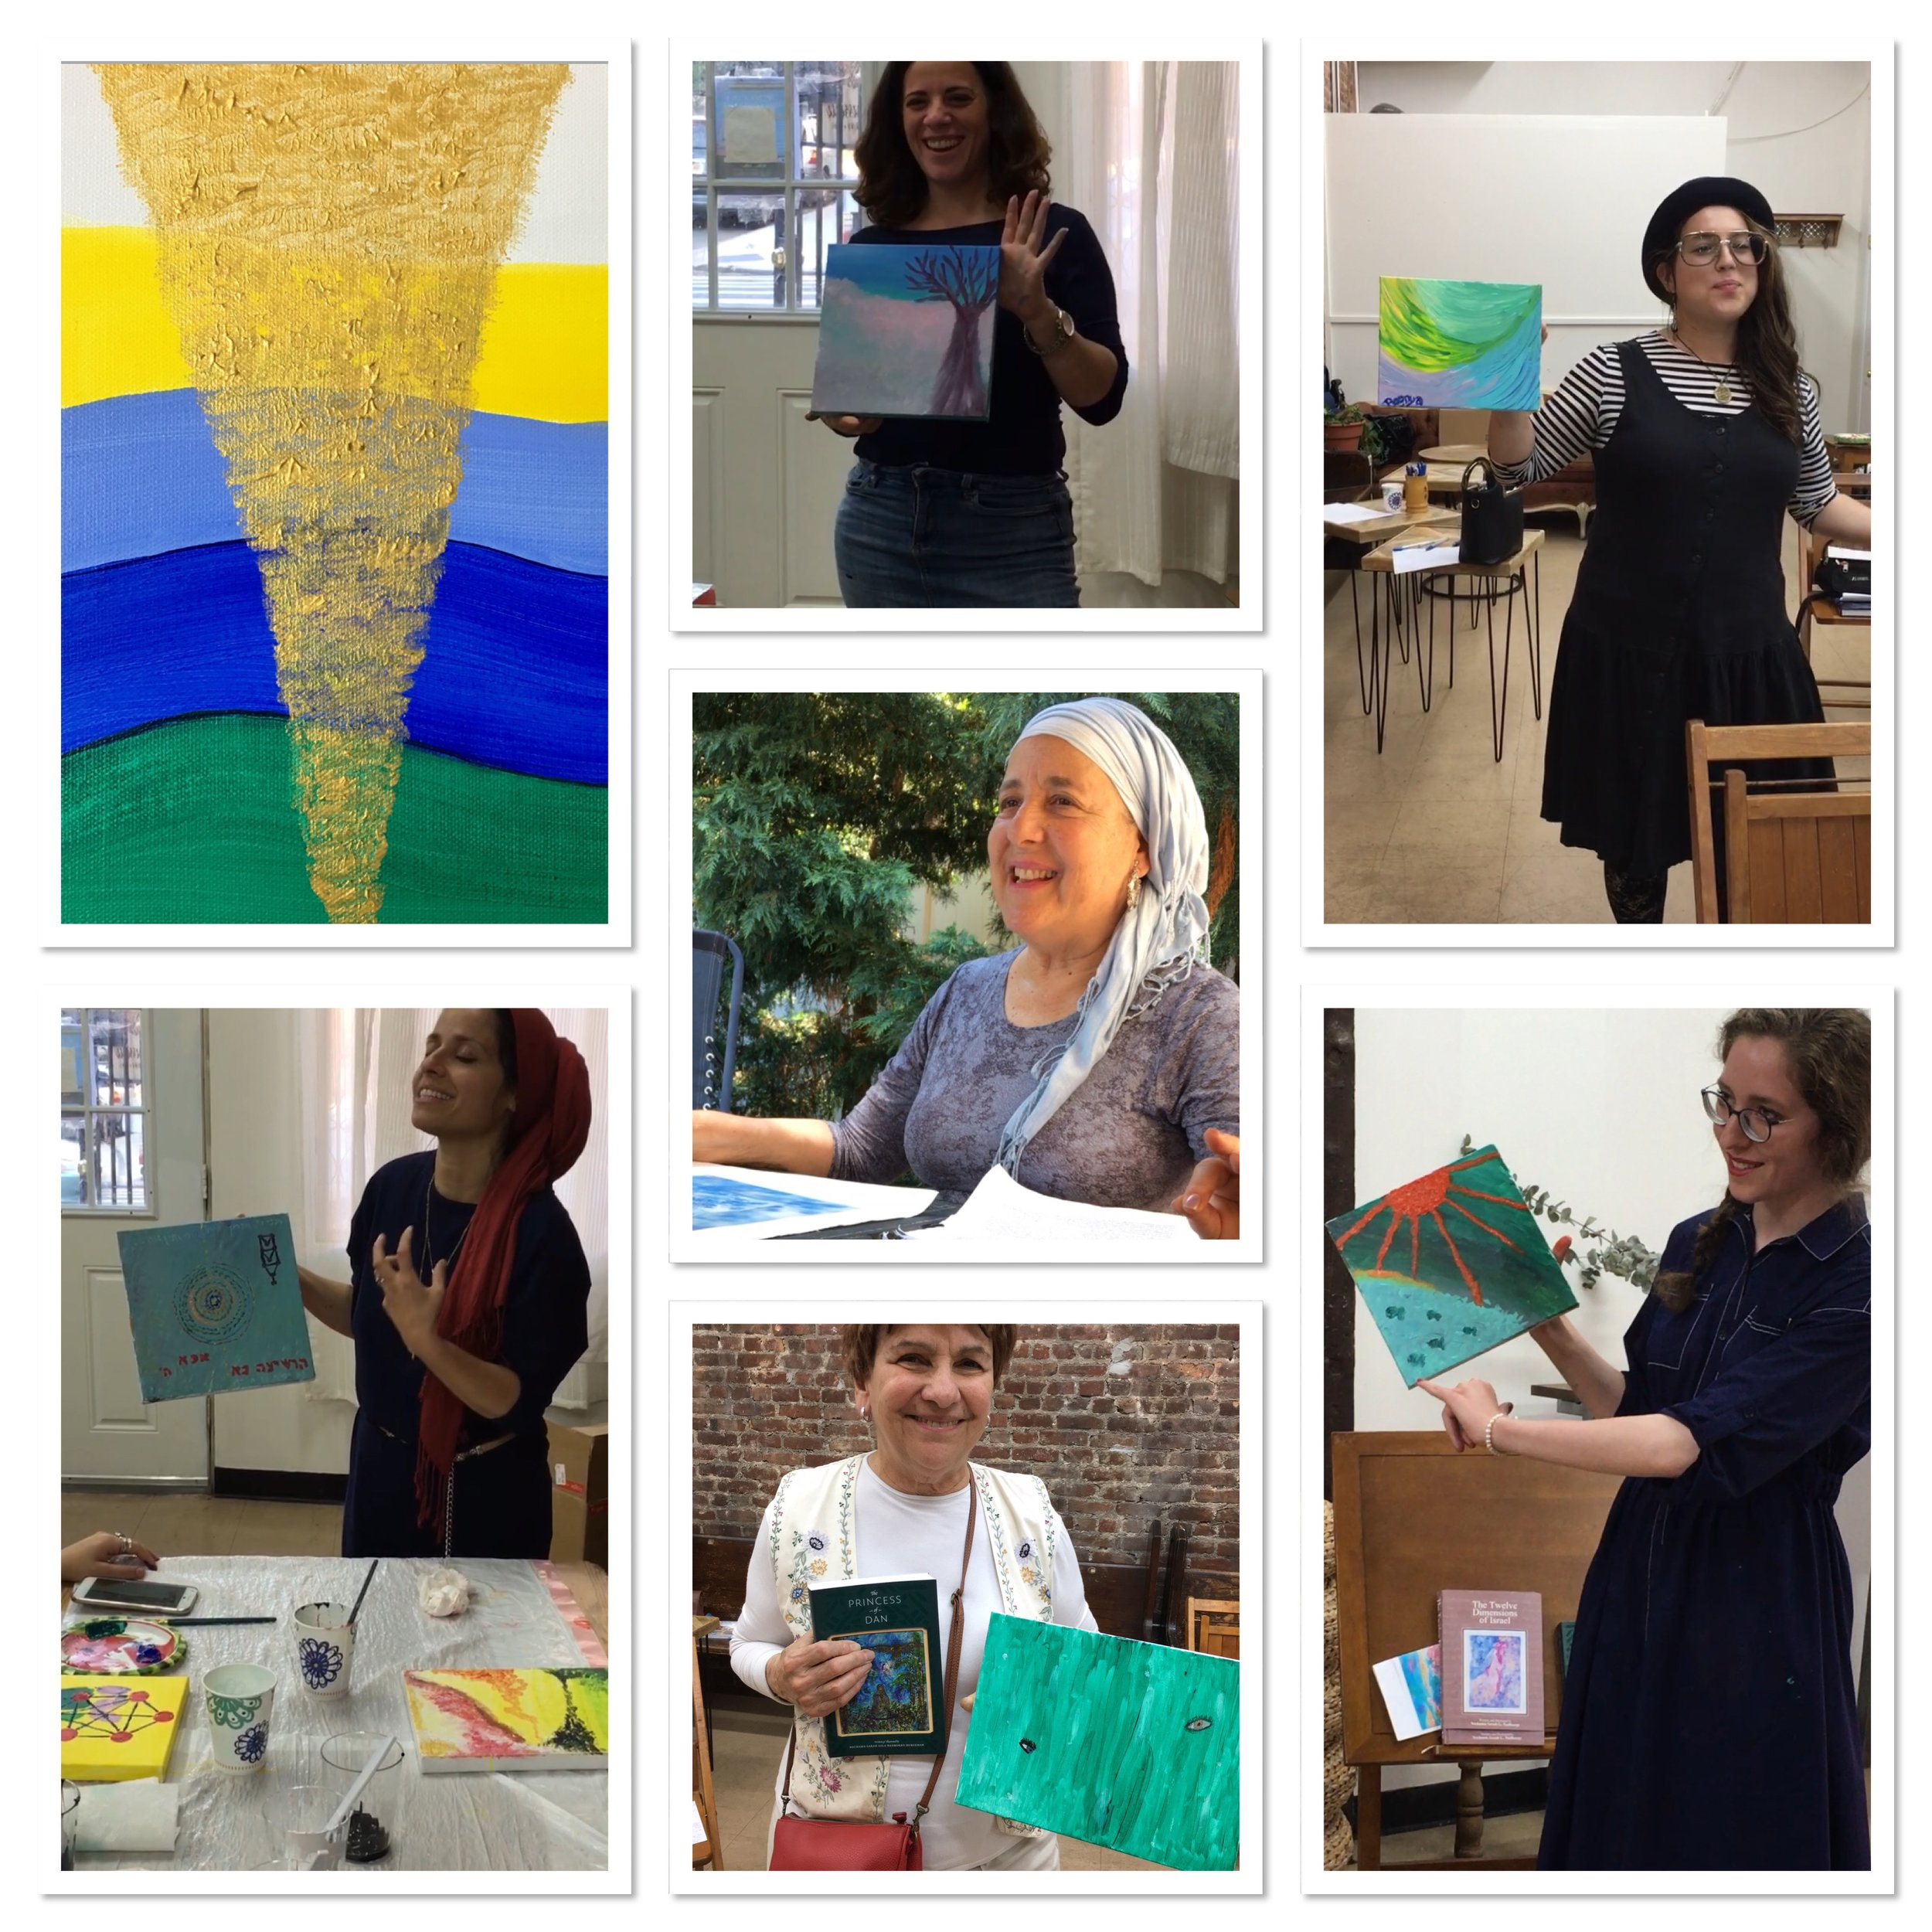 crown heights - LUMINESSENCE, MEDITATIVE PAINTING WORKSHOP, JULY 2018